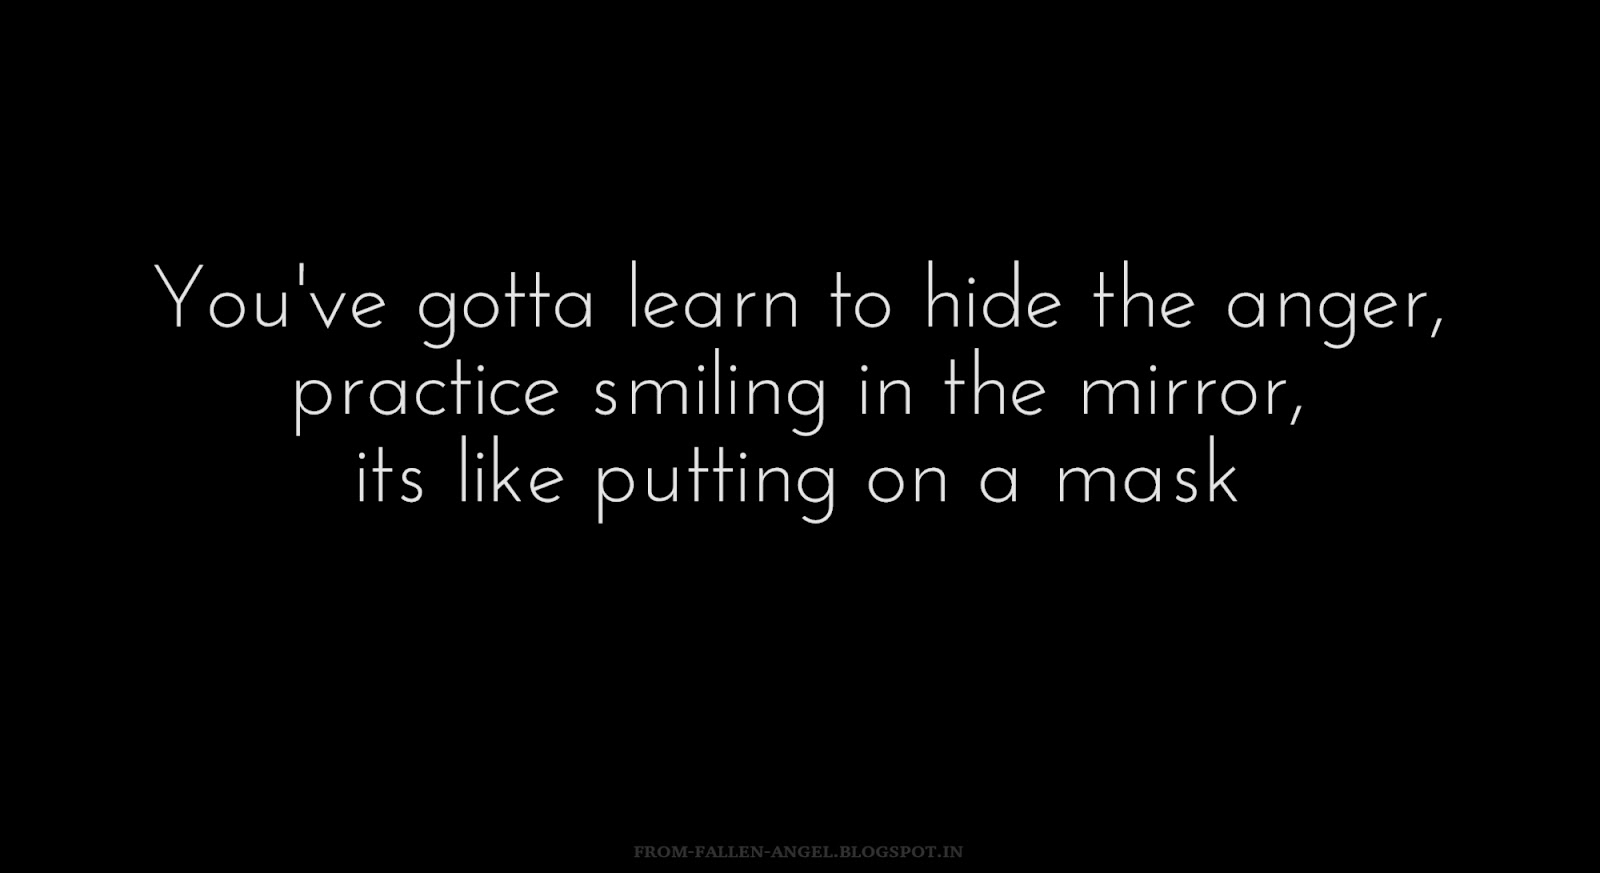 You've gotta learn to hide the anger, practice smiling in the mirror, its like putting on a mask